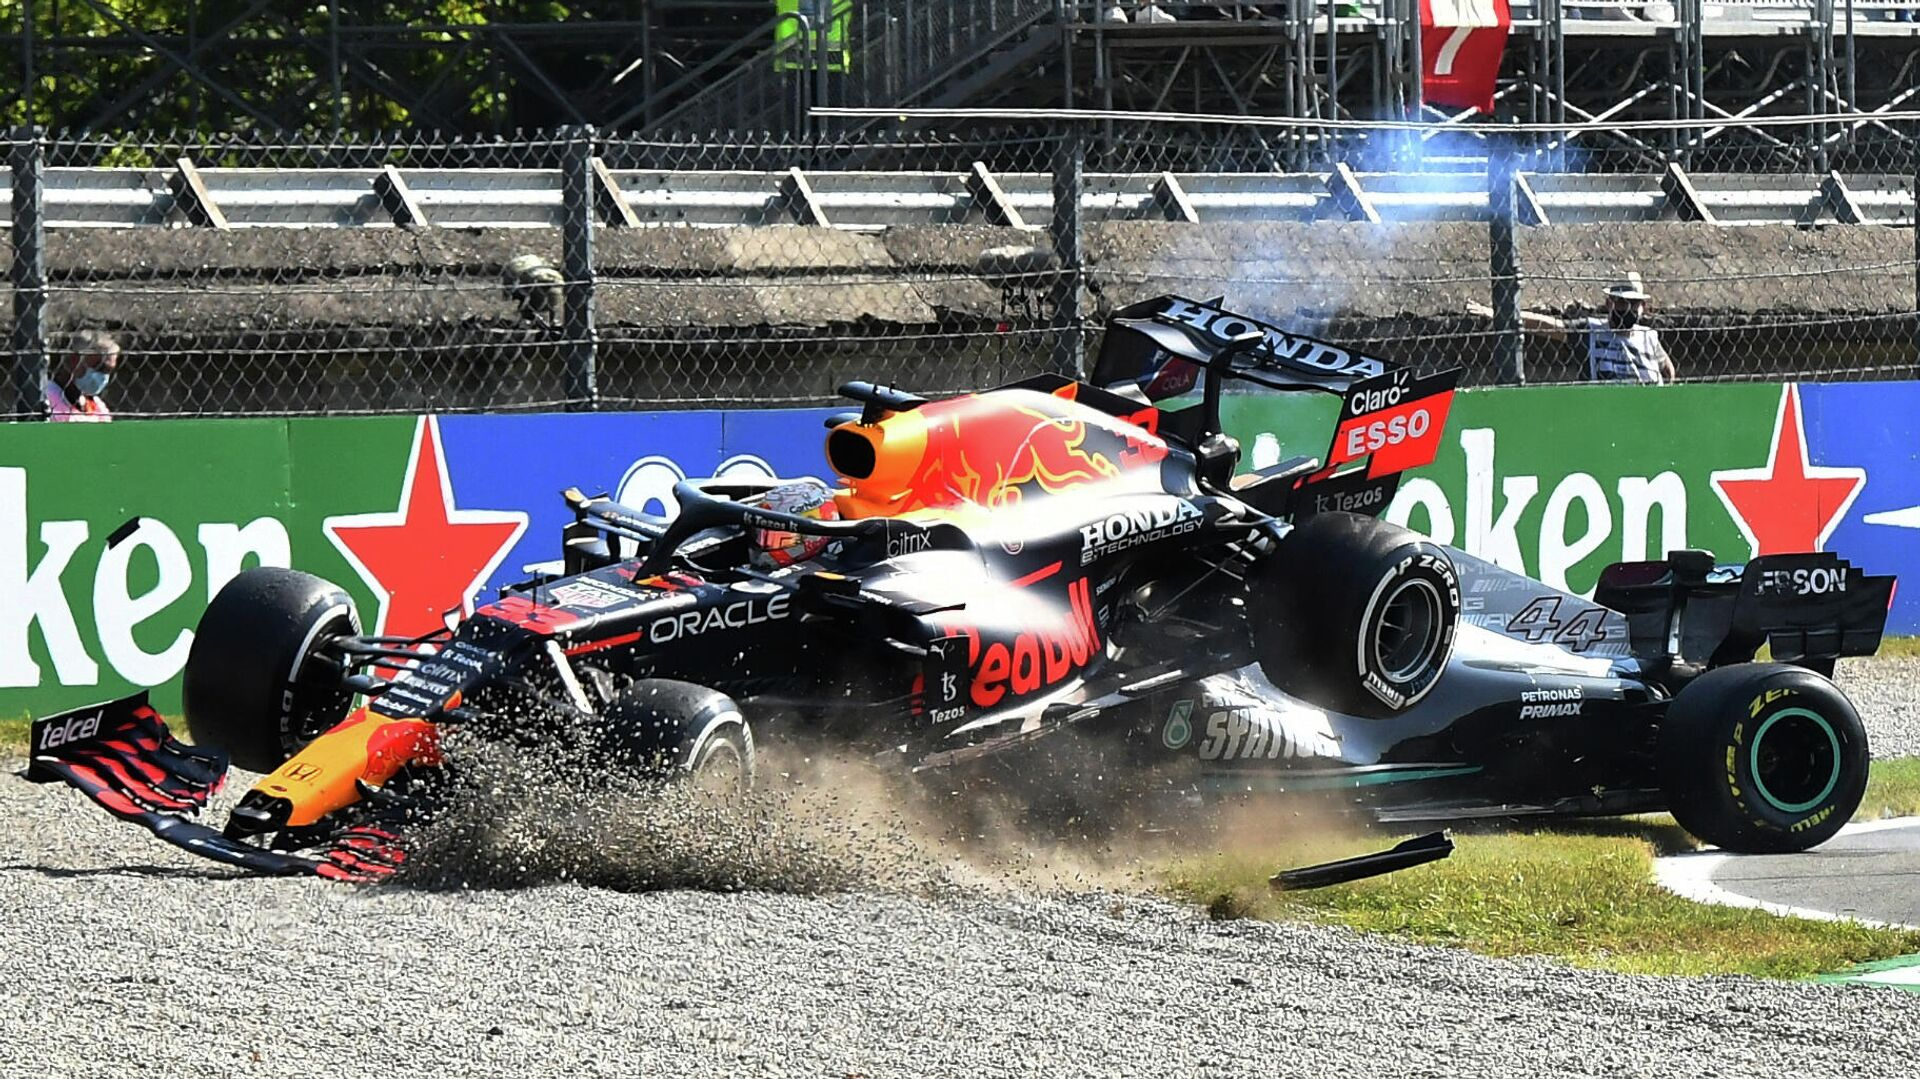 Red Bull's Max Verstappen and Mercedes' Lewis Hamilton crash out of the race  - Sputnik International, 1920, 16.09.2021